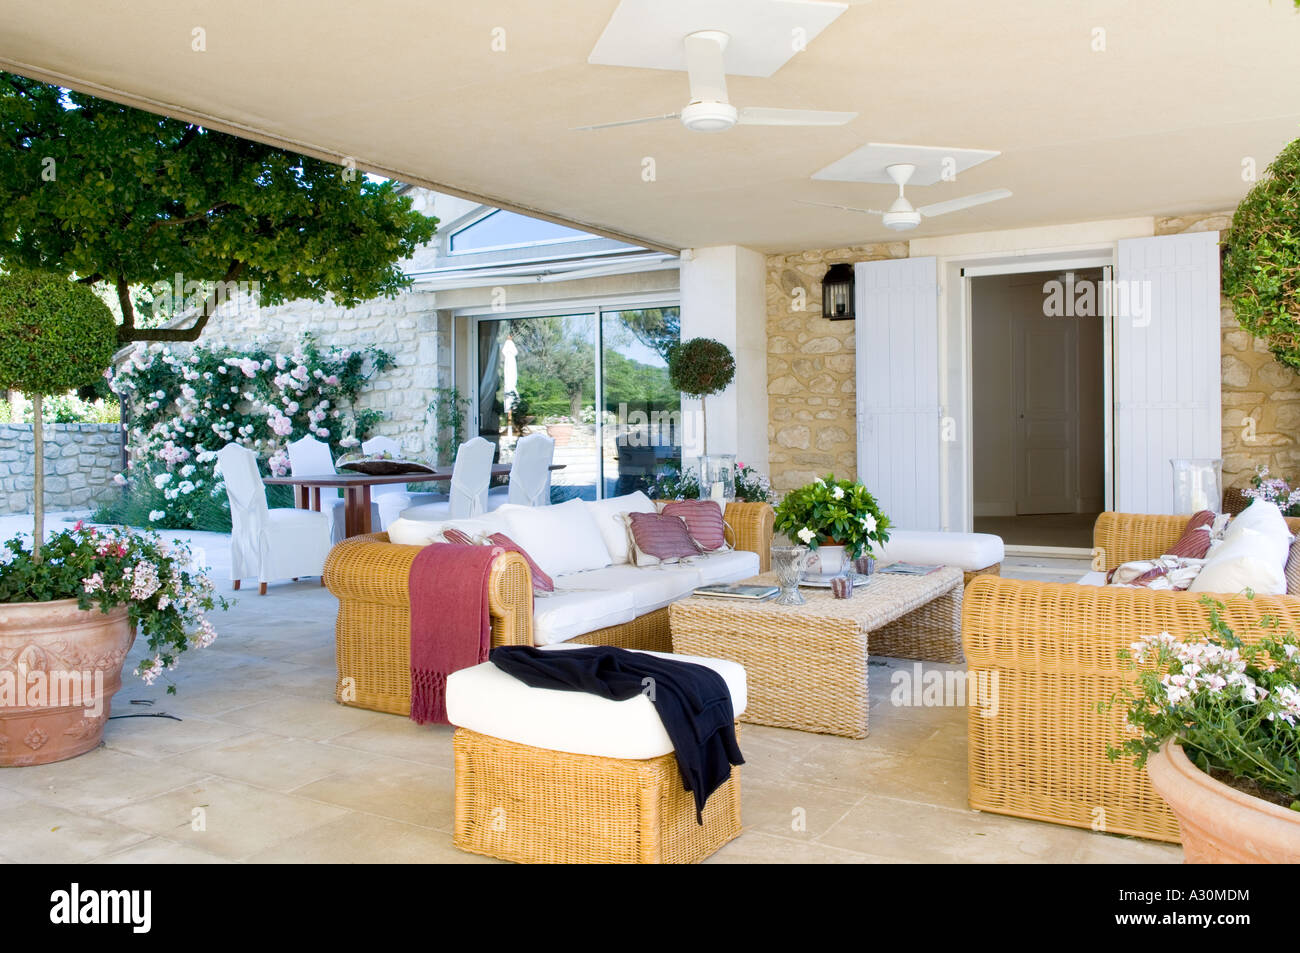 veranda wicker stockfotos veranda wicker bilder alamy. Black Bedroom Furniture Sets. Home Design Ideas